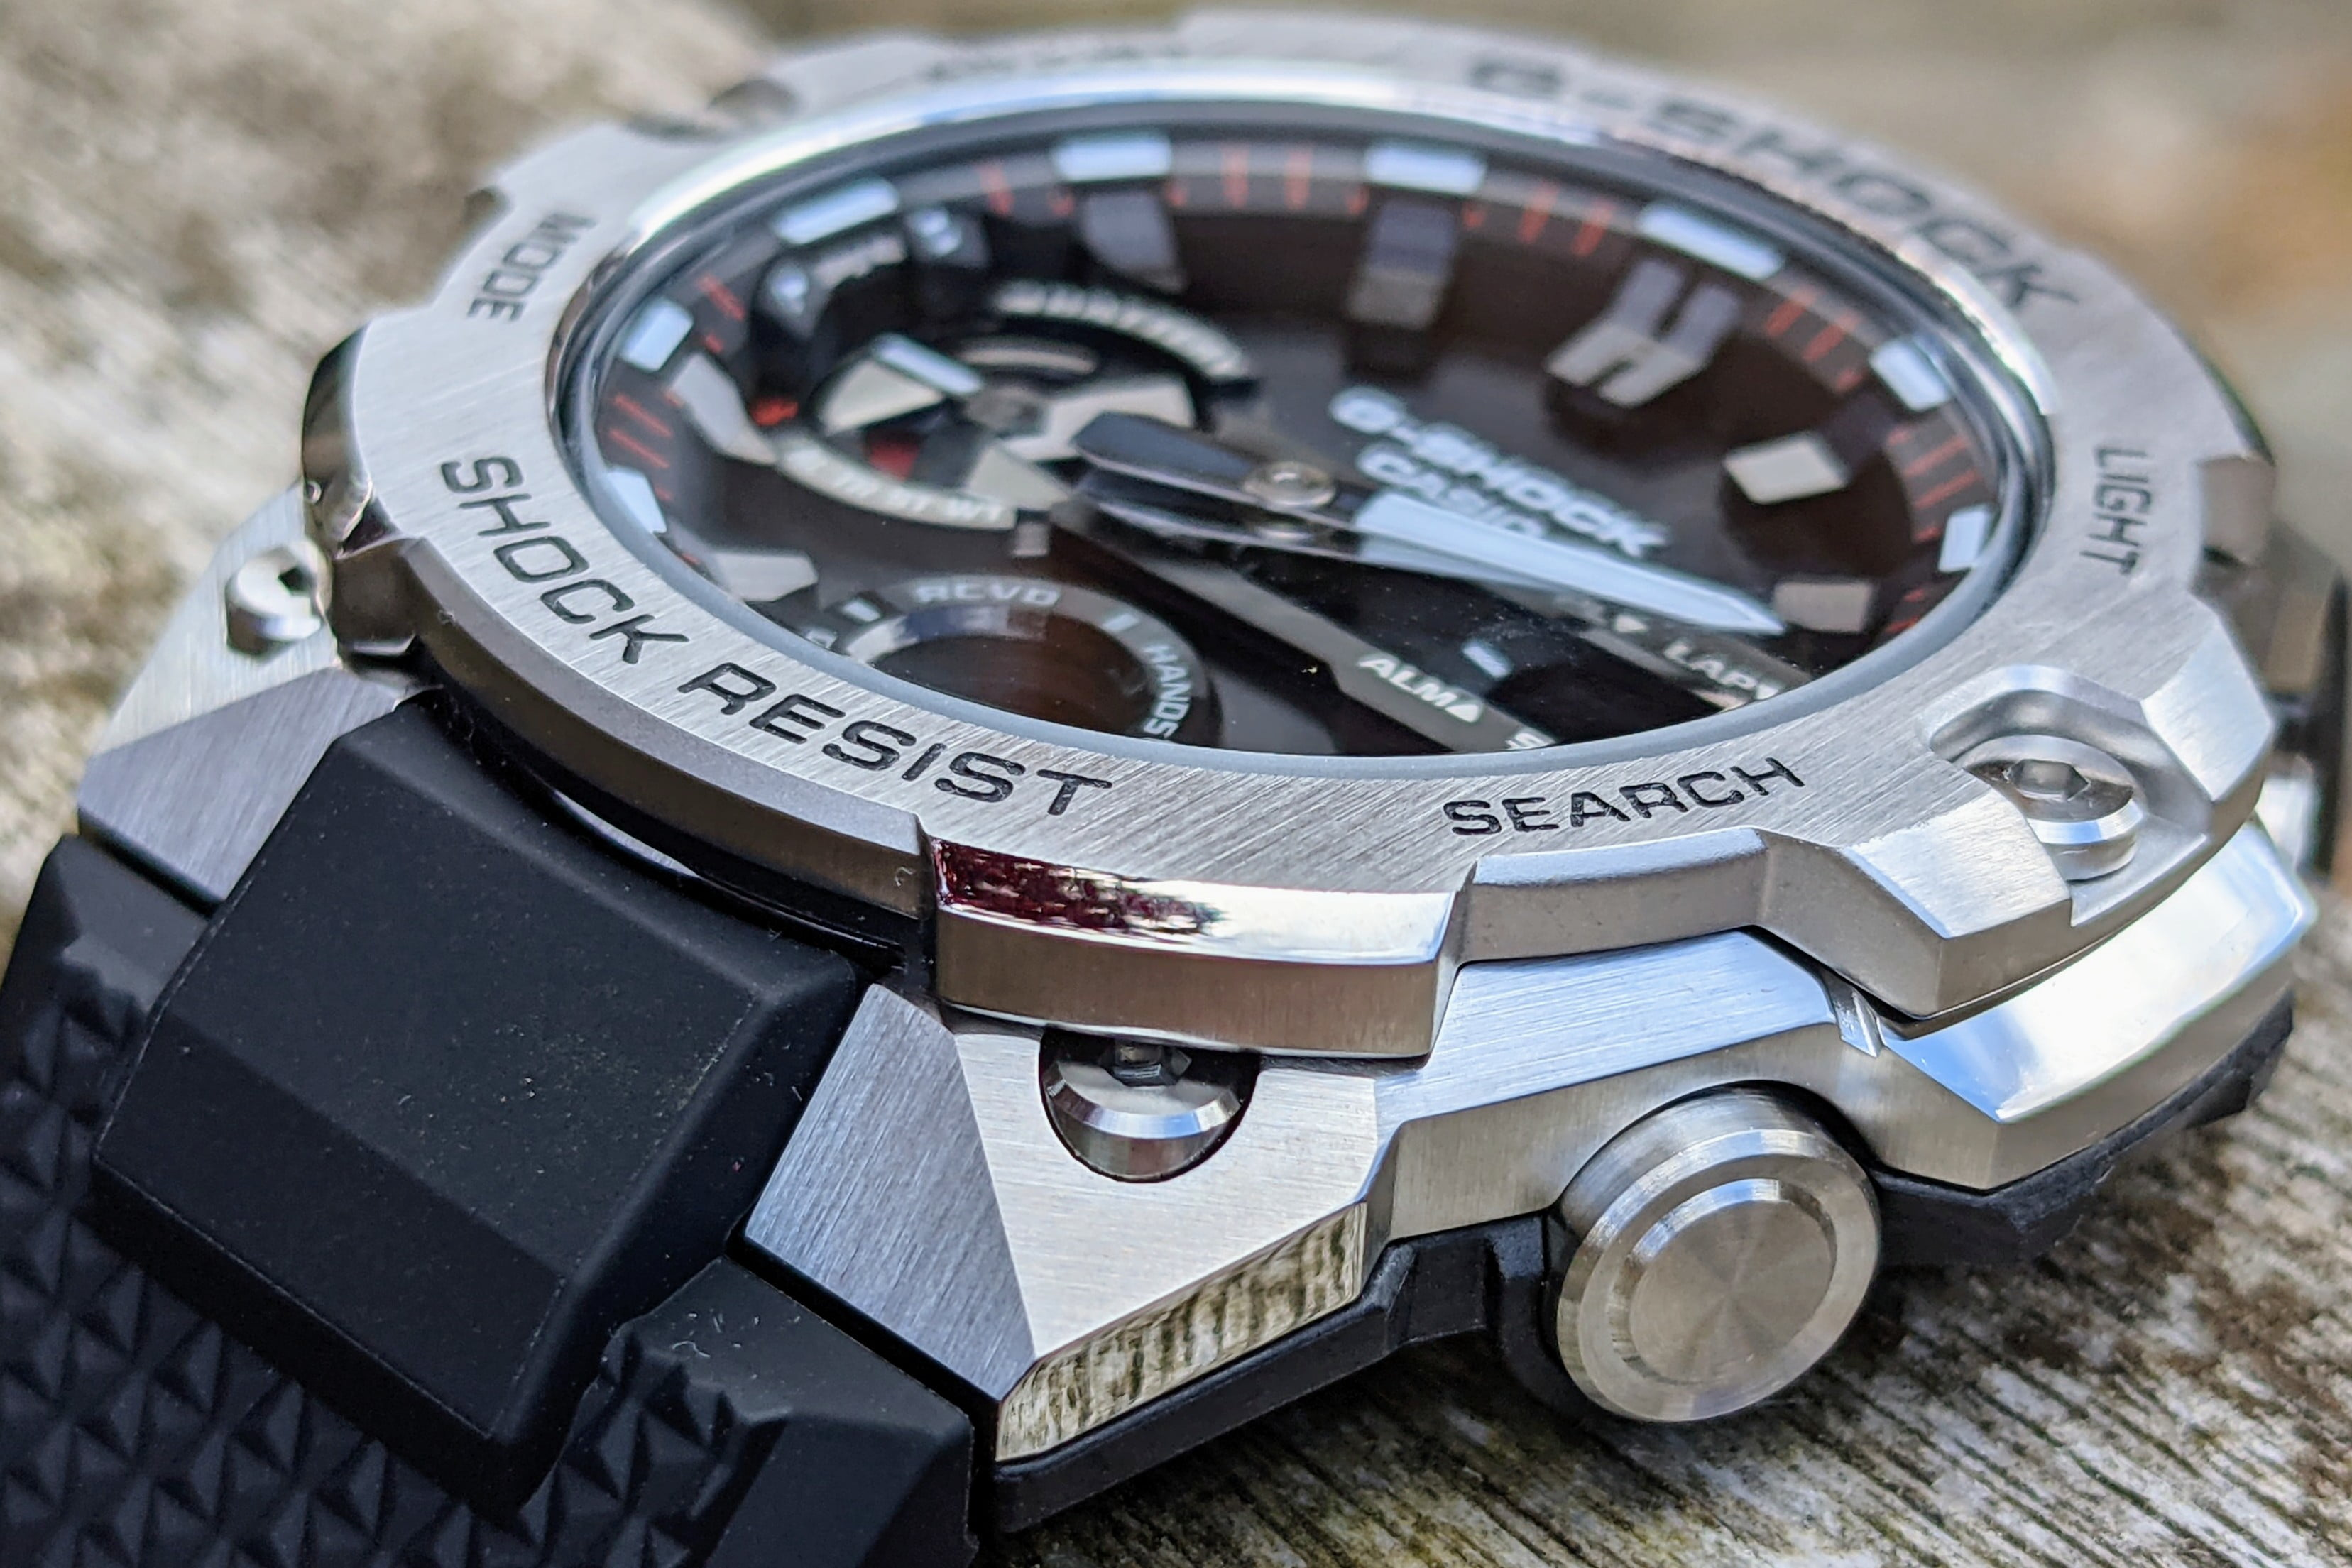 casio g shock steel gst b400 hands on features price photos release date case side close